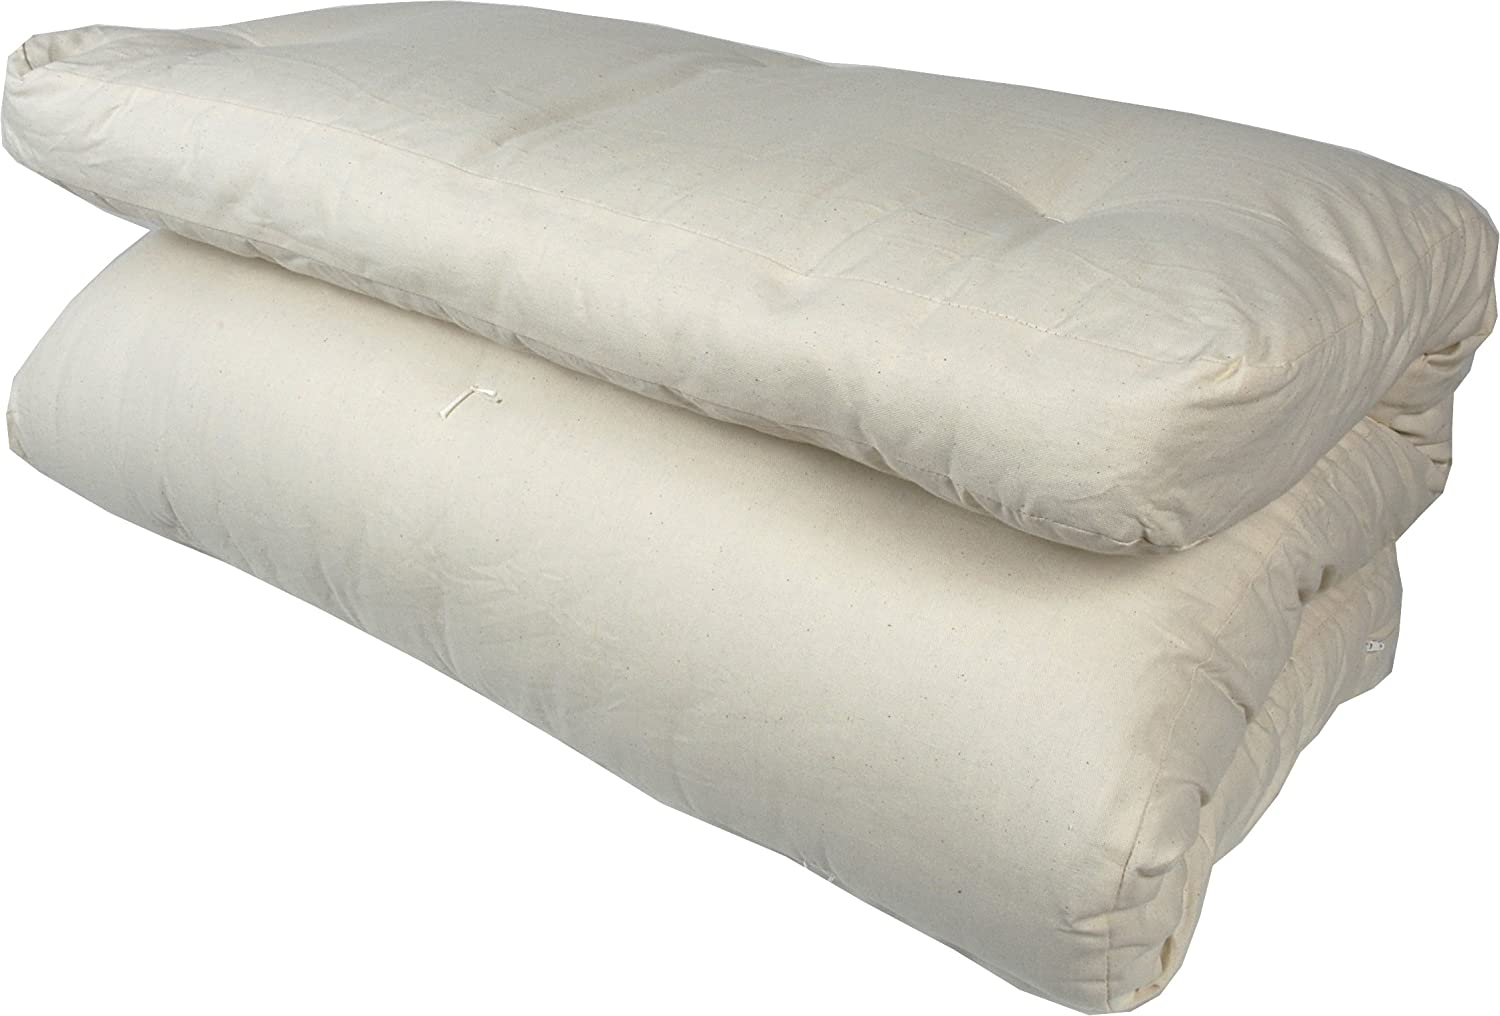 s x rolling tan size japanese up mattress floor futons futon queen ebay roll mat thai itm